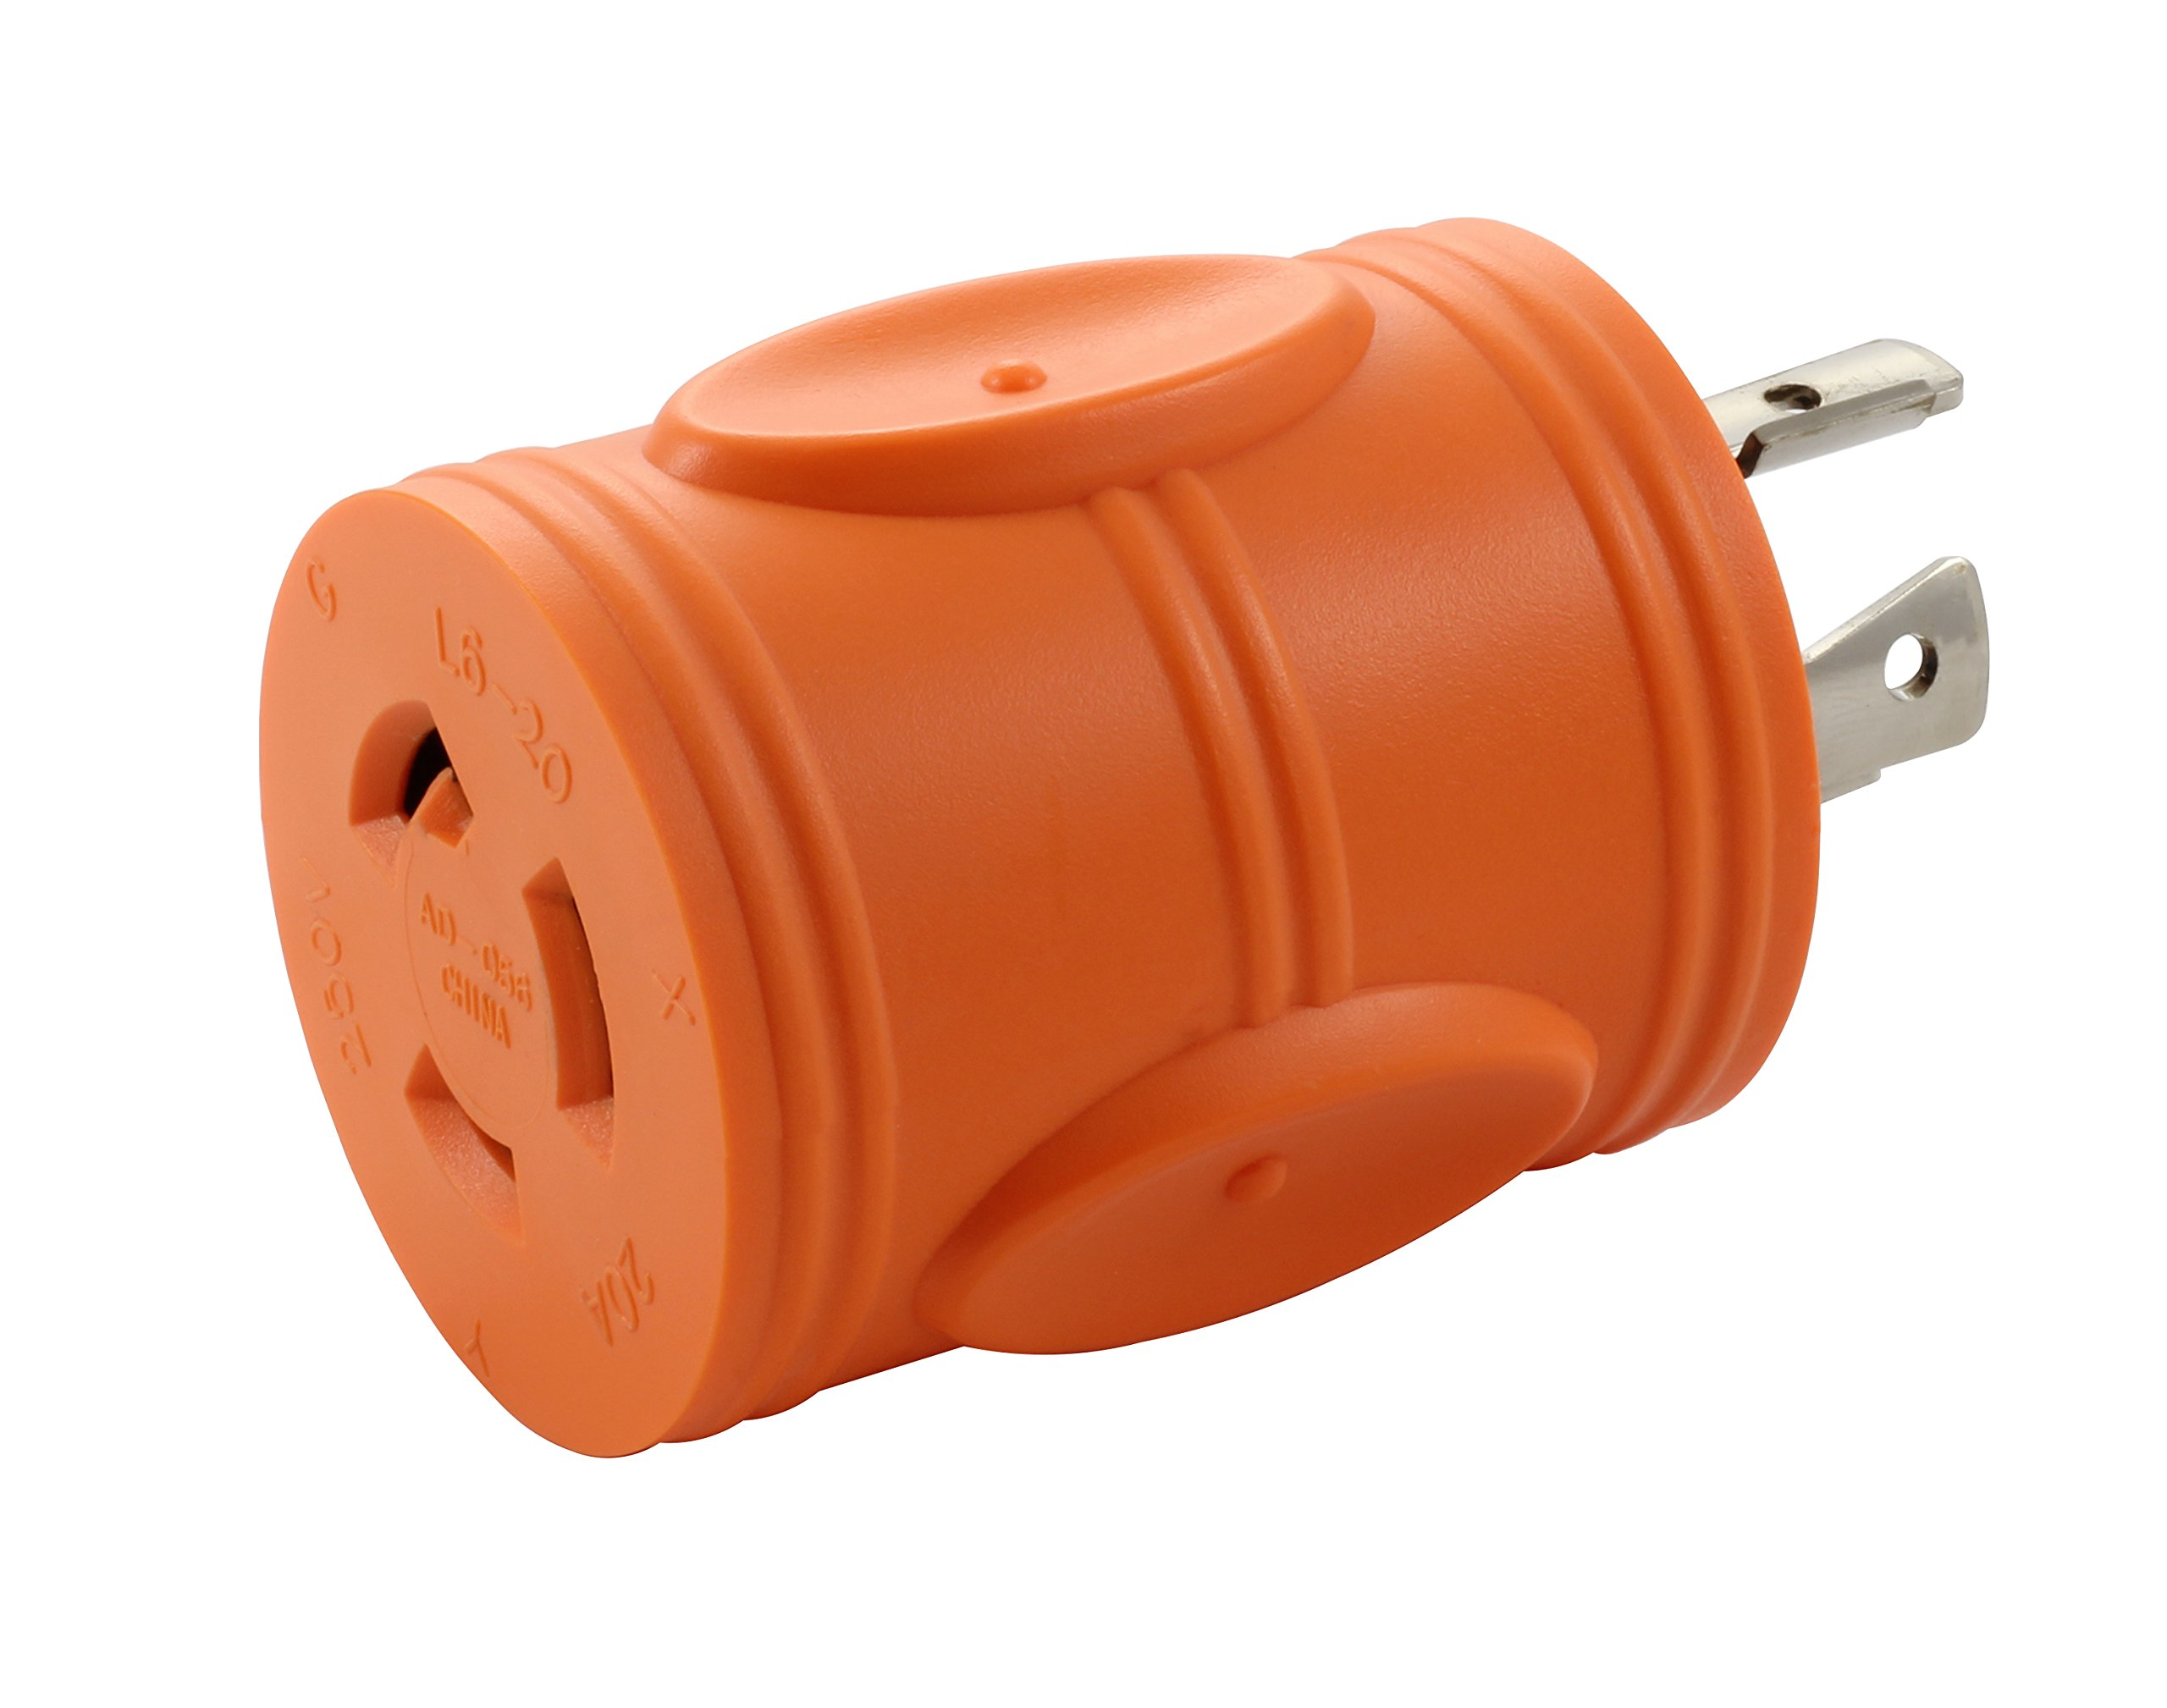 AC WORKS [ADL1420L620] Locking Adapter 4Prong 20Amp 125/250Volt NEMA L14-20P Locking Plug to L6-20R 20Amp 250Volt Locking Female Connector